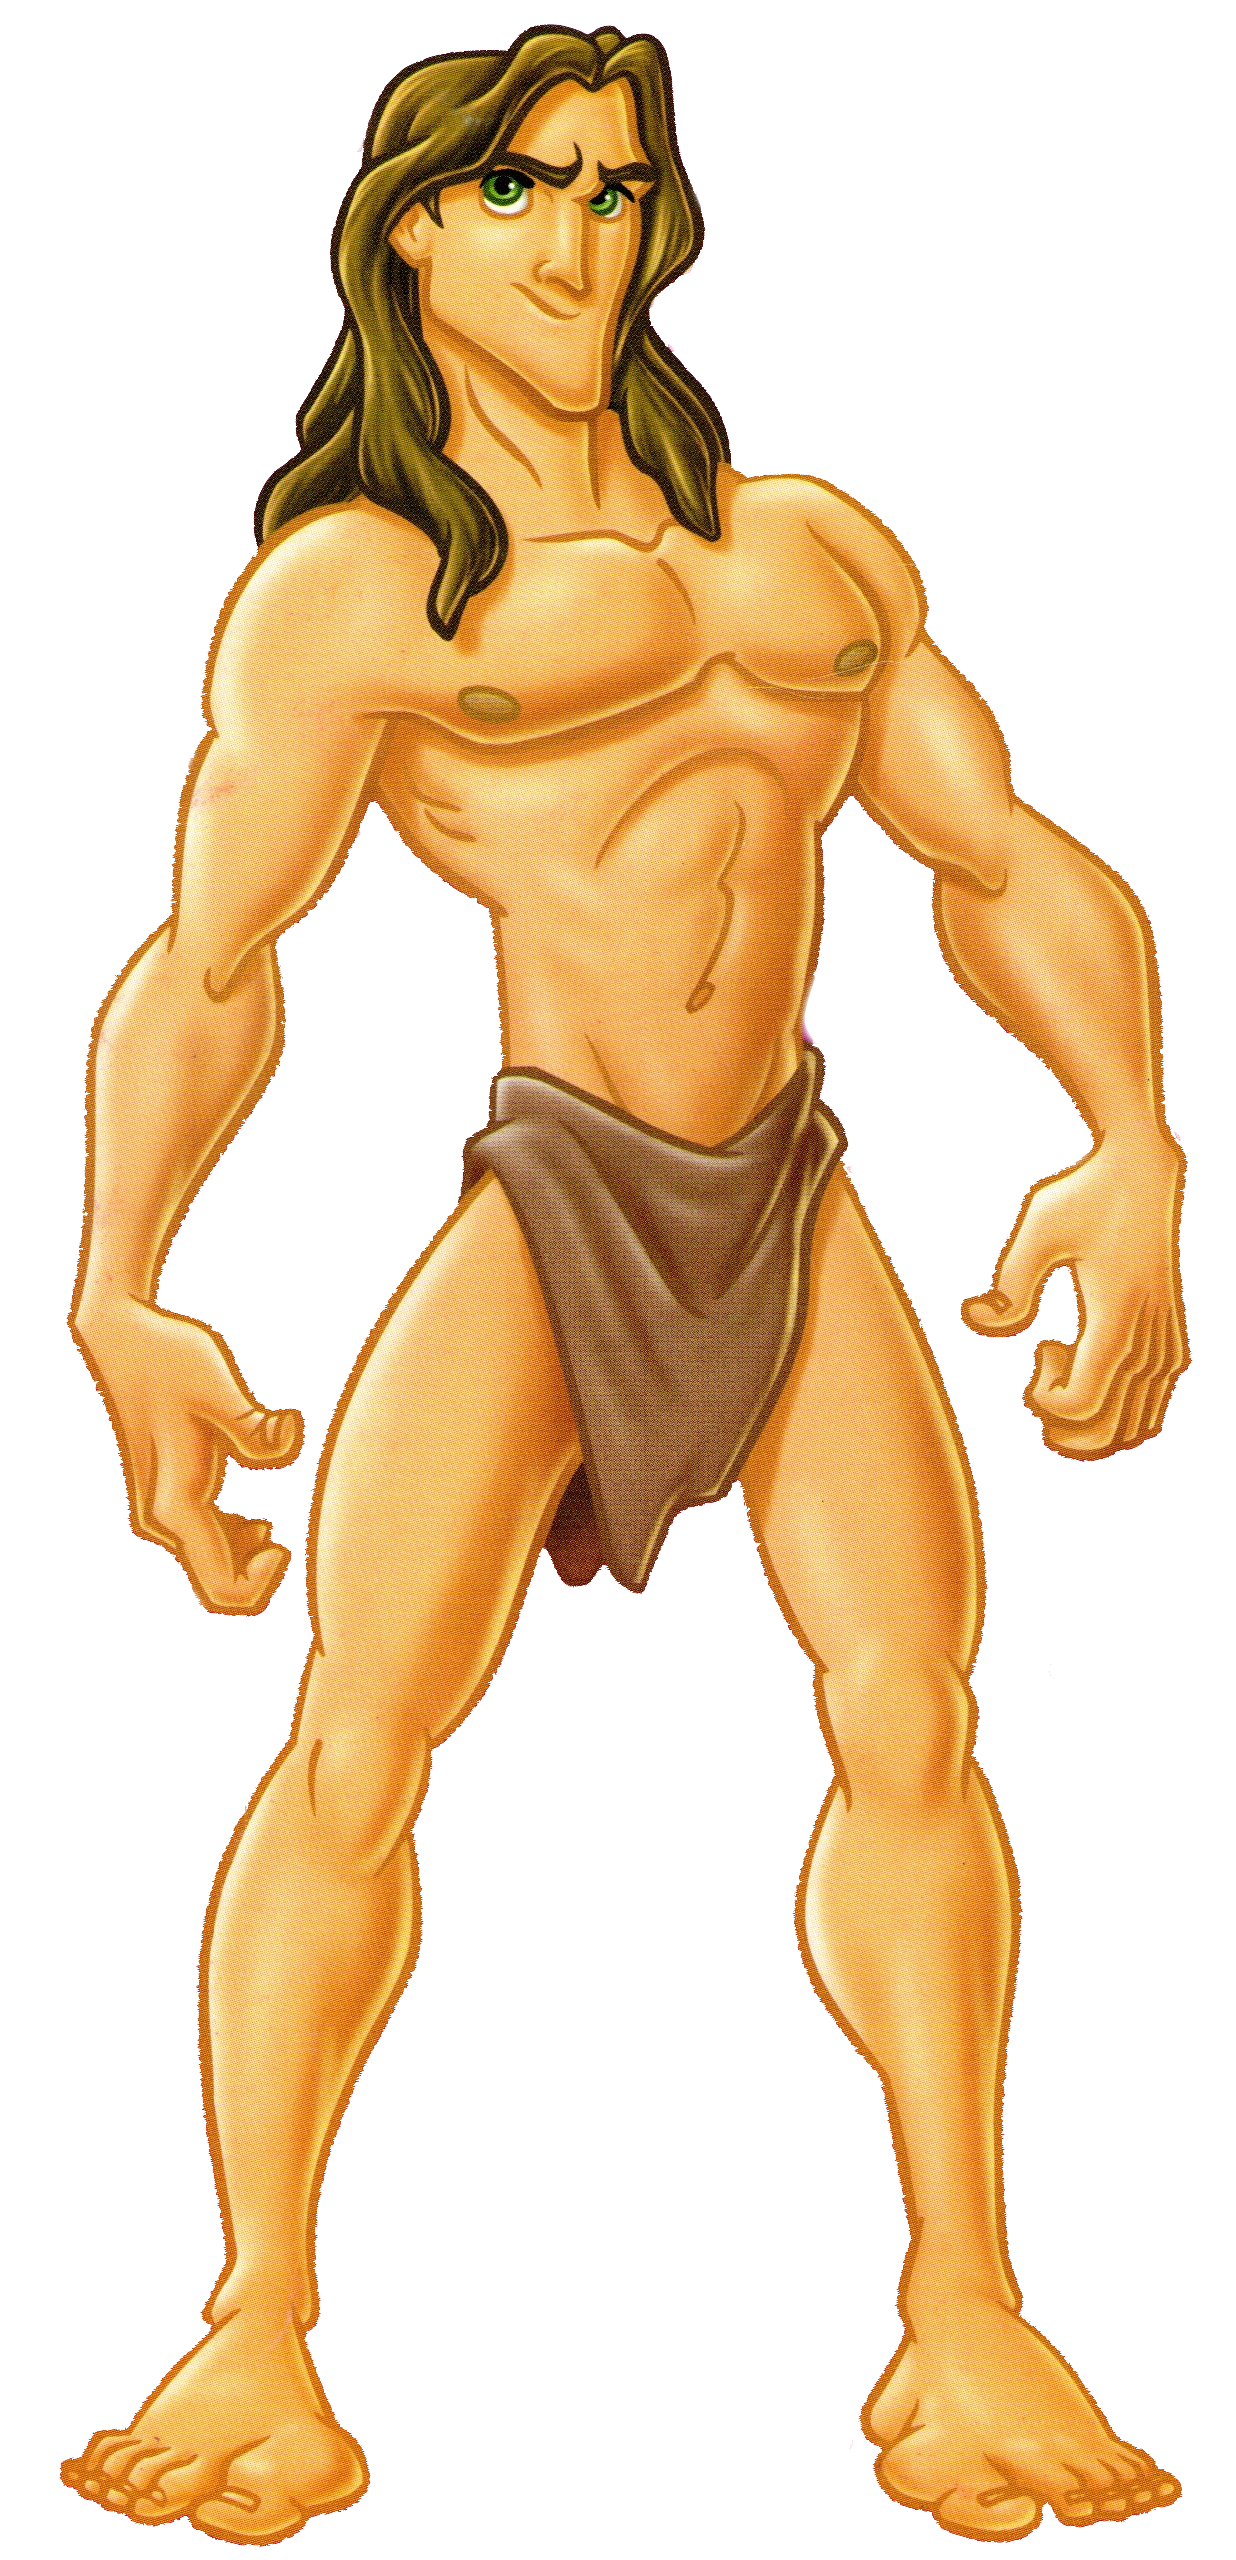 Tarzan (Disney) | Heroes Wiki | FANDOM powered by Wikia